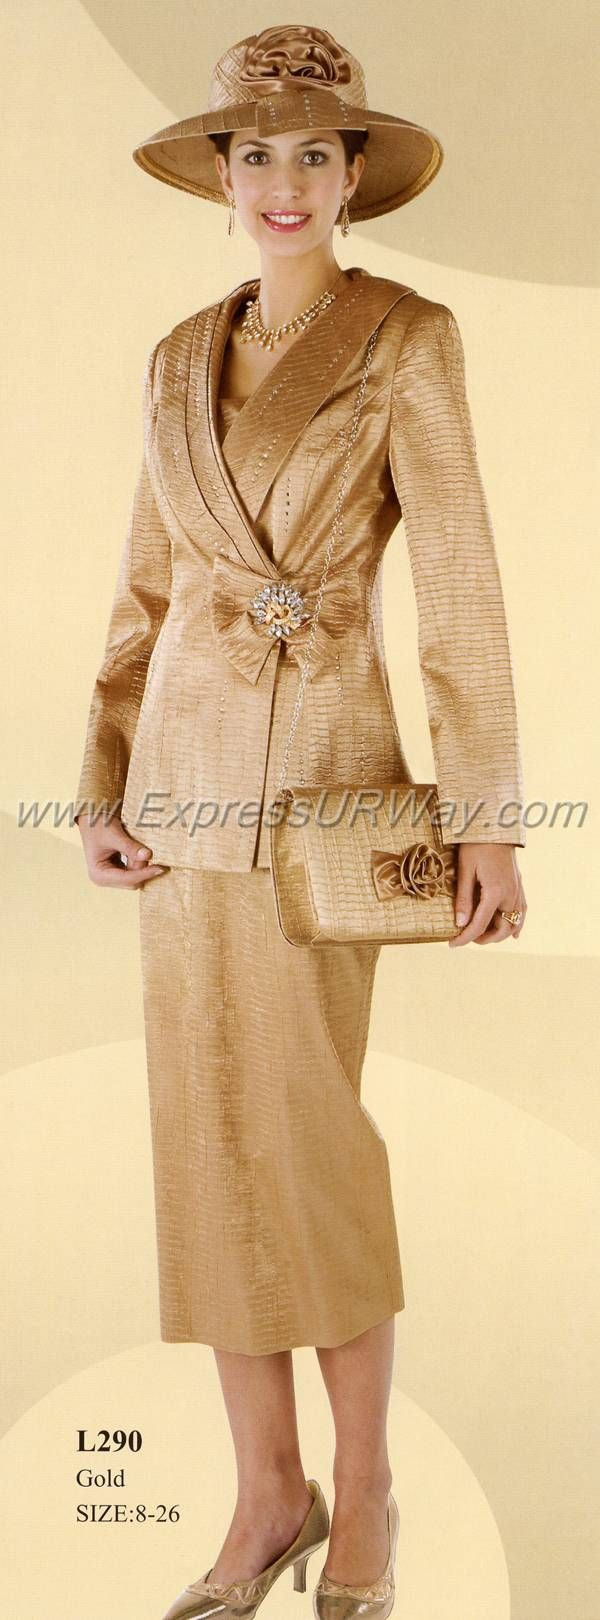 Womens Suits by Lyndas of New York - - www.ExpressURWay.com ...